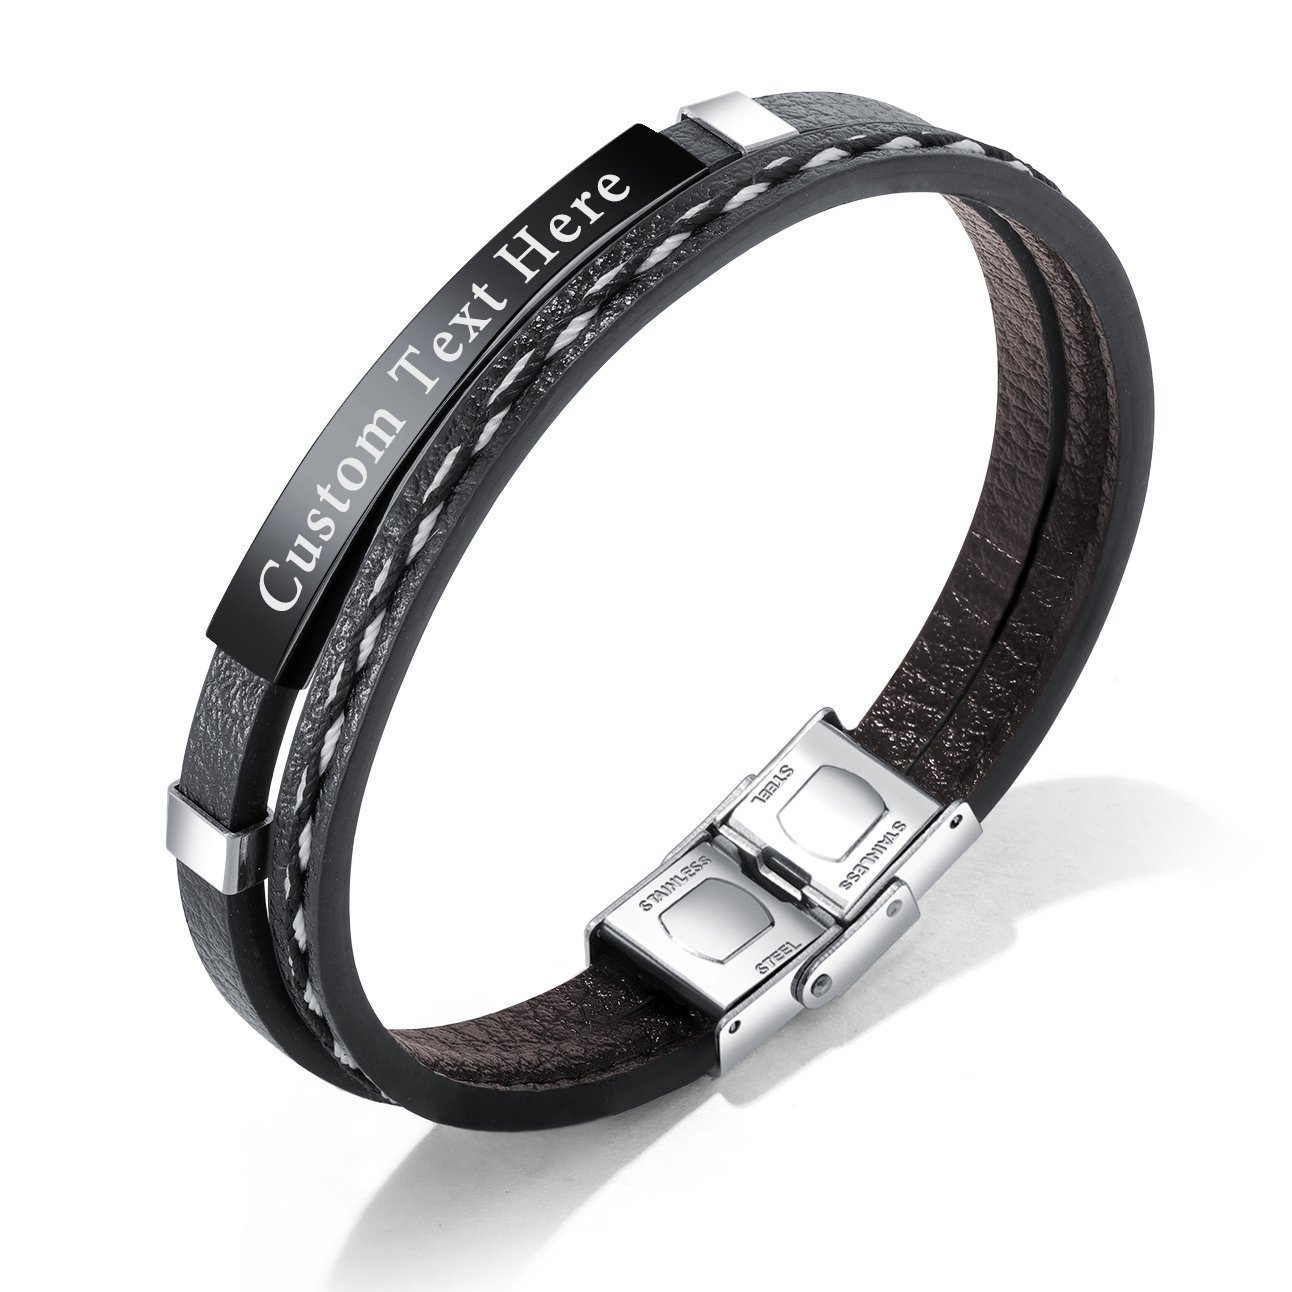 GAGAFEEL Leather Bracelet Braided Rope Cuff Custom Engraved Message Stainless Steel Bangle Unisex Gift (Engraving-Black) by GAGAFEEL (Image #7)